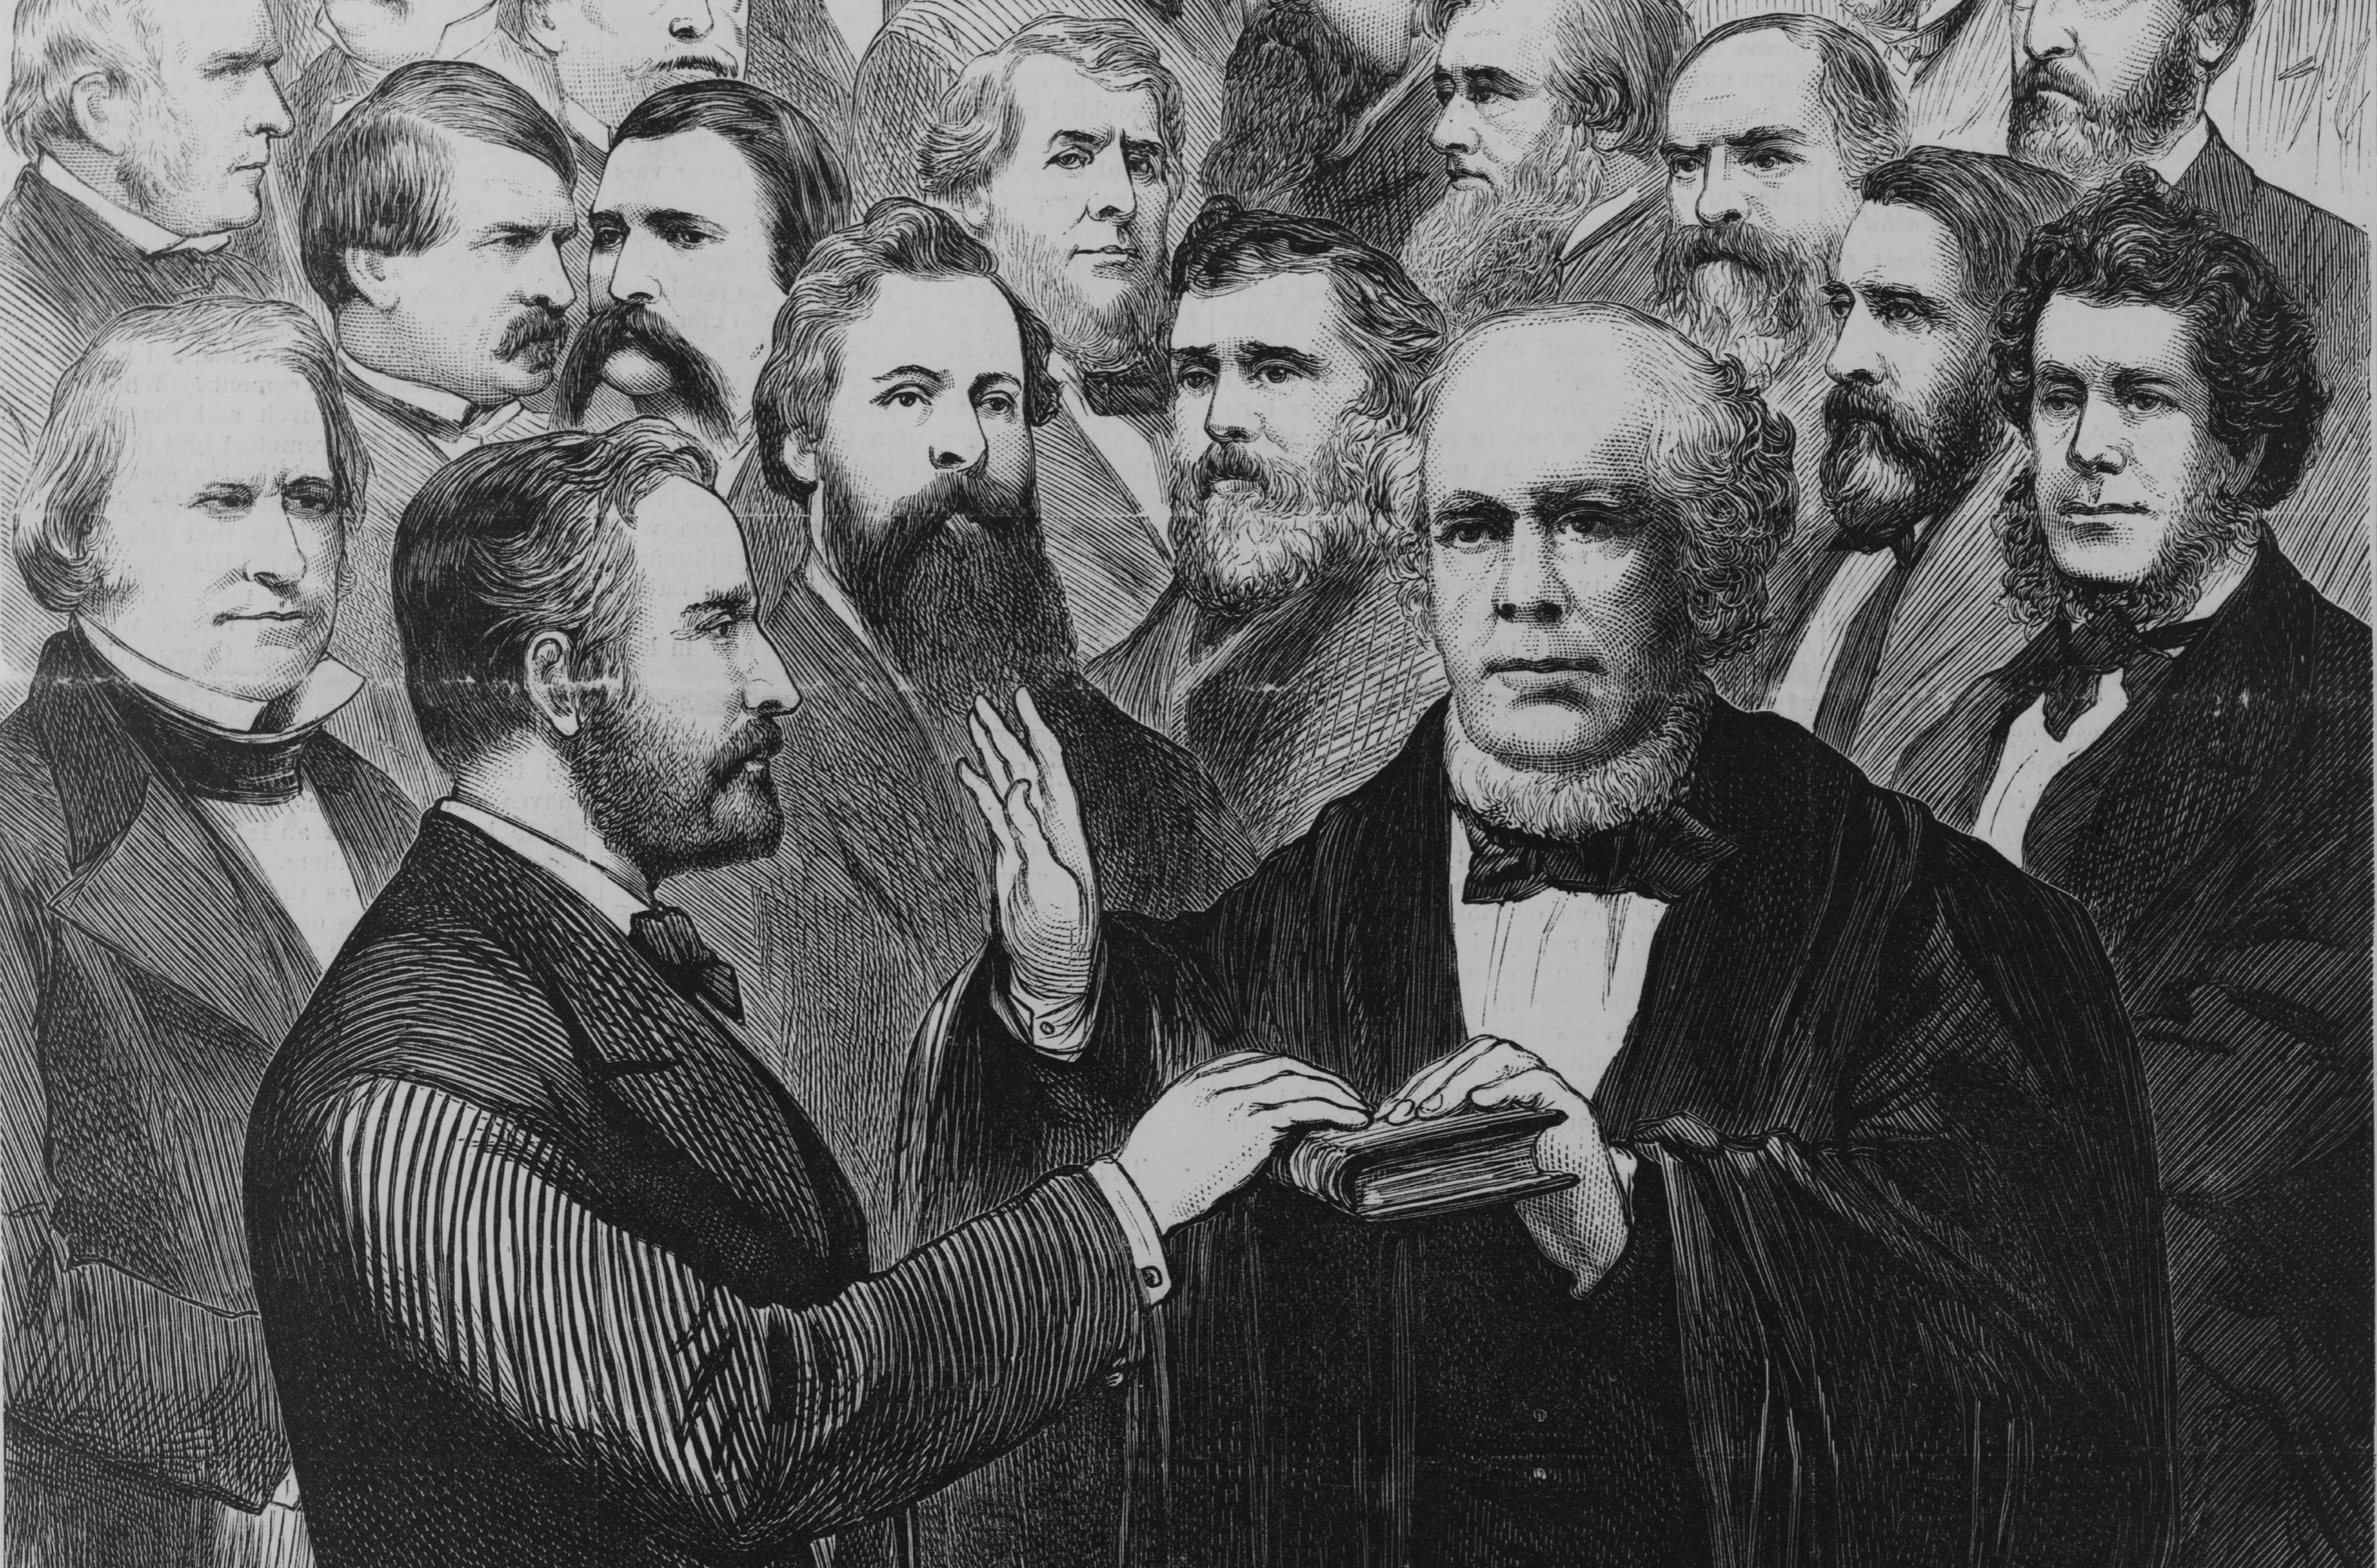 Chief Justice administers oath of office to Ulysses S. Grant.